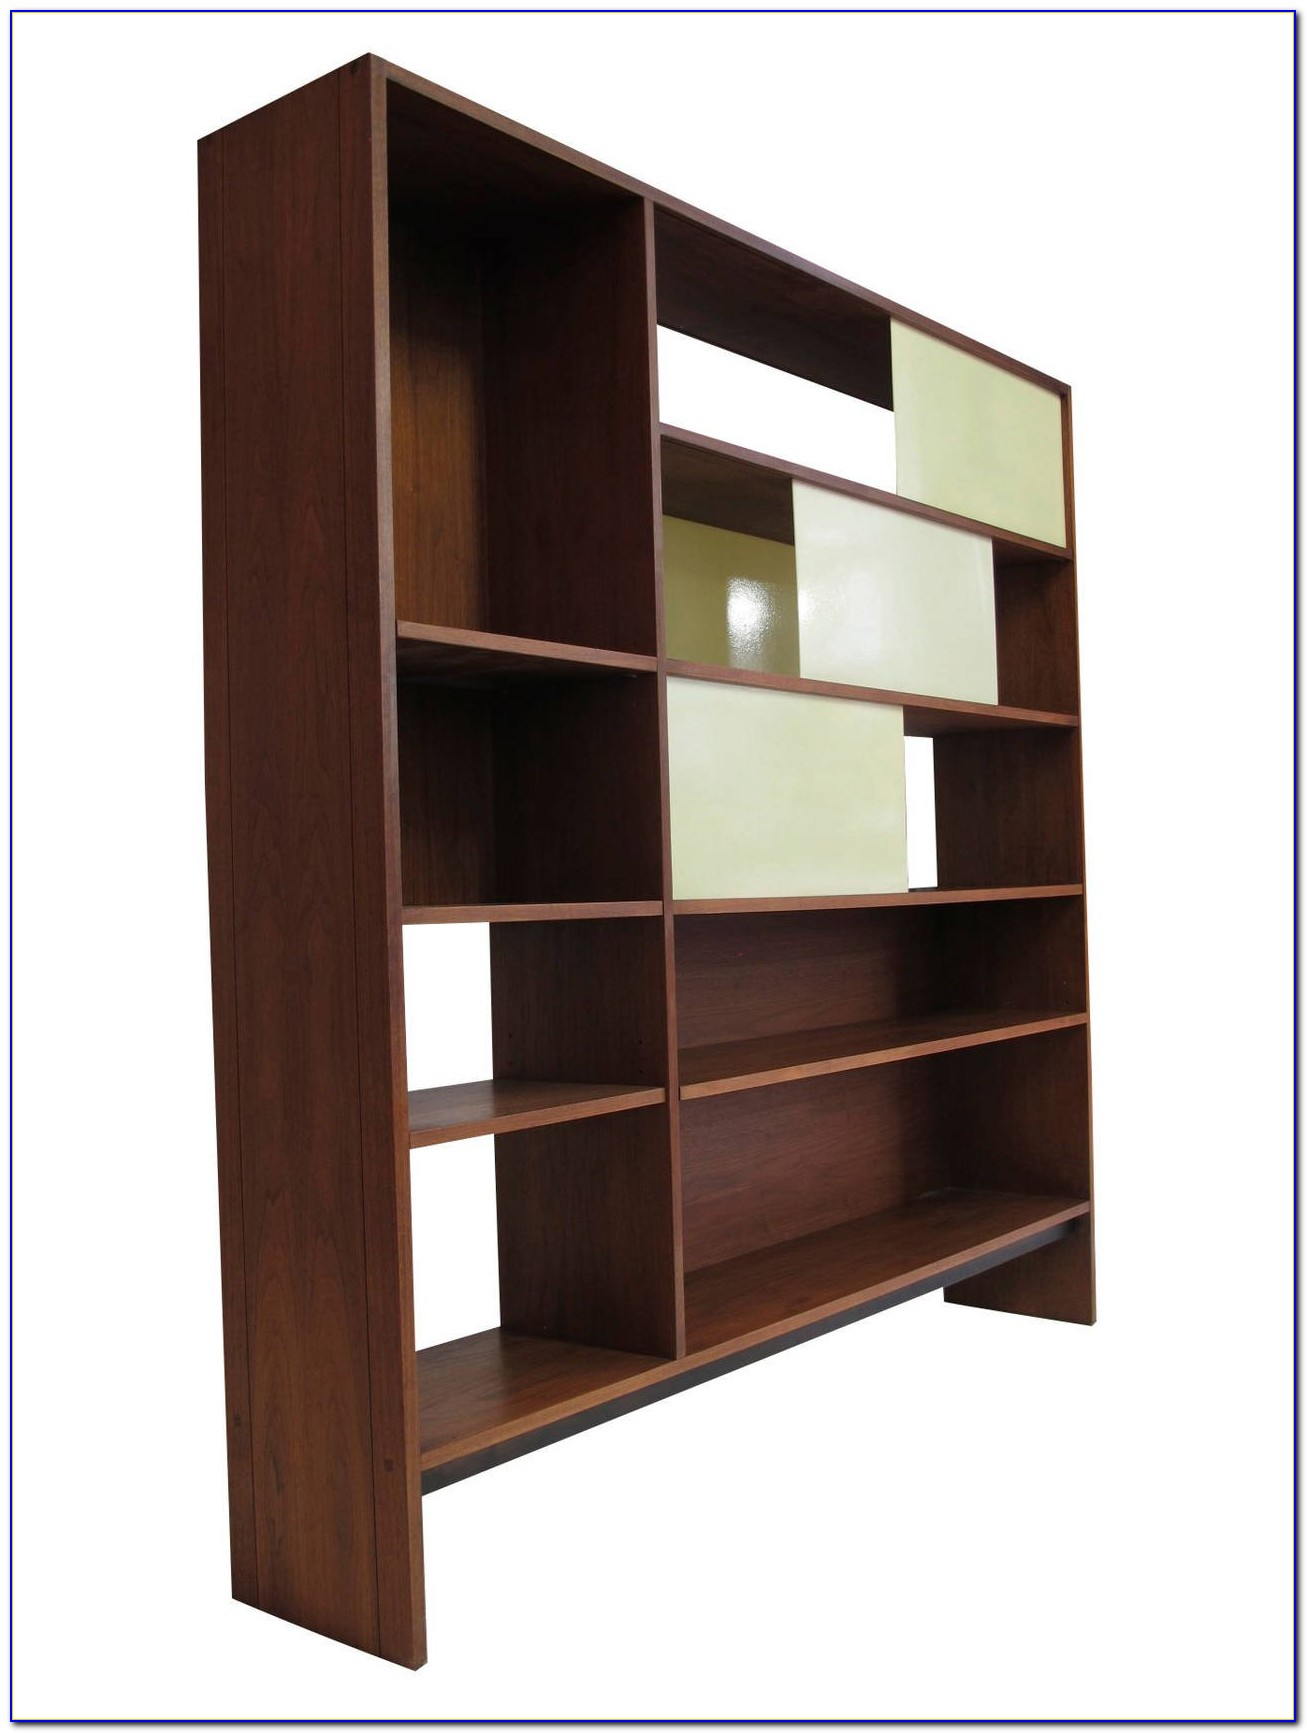 Ikea Bookcase As Room Divider